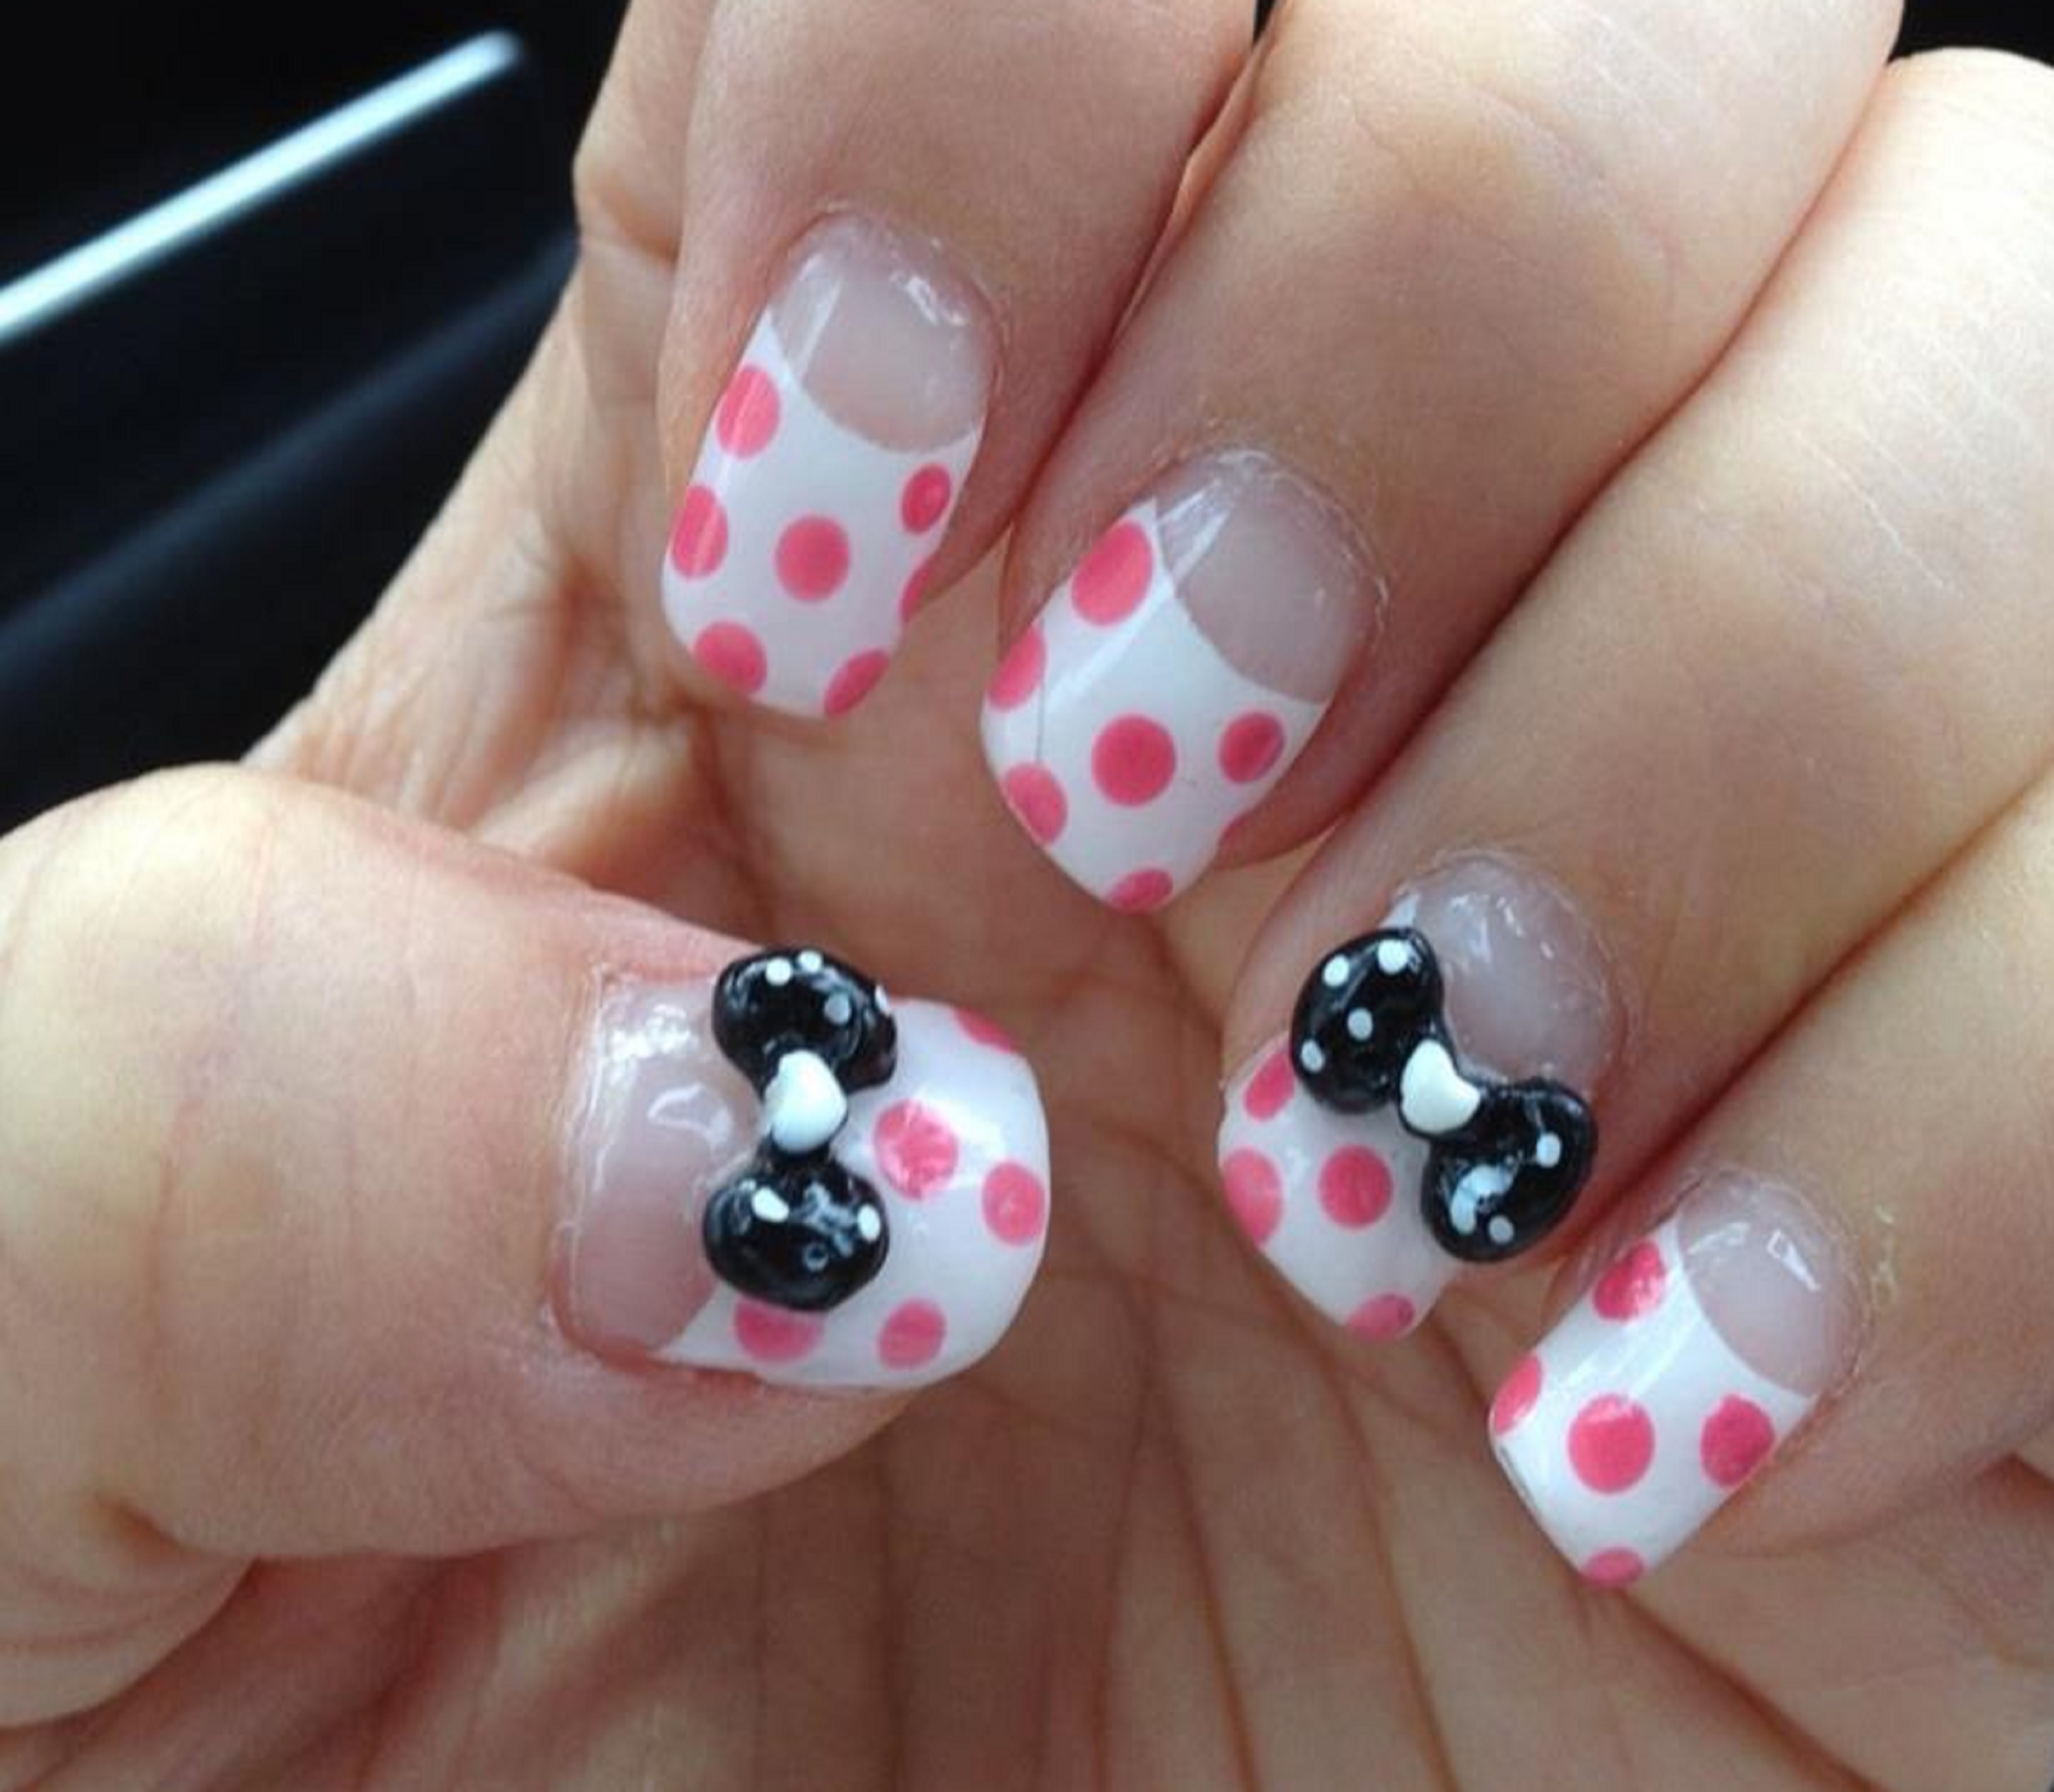 Art nails hours best nails 2018 nail art hours muncie indiana best nails 2018 prinsesfo Image collections